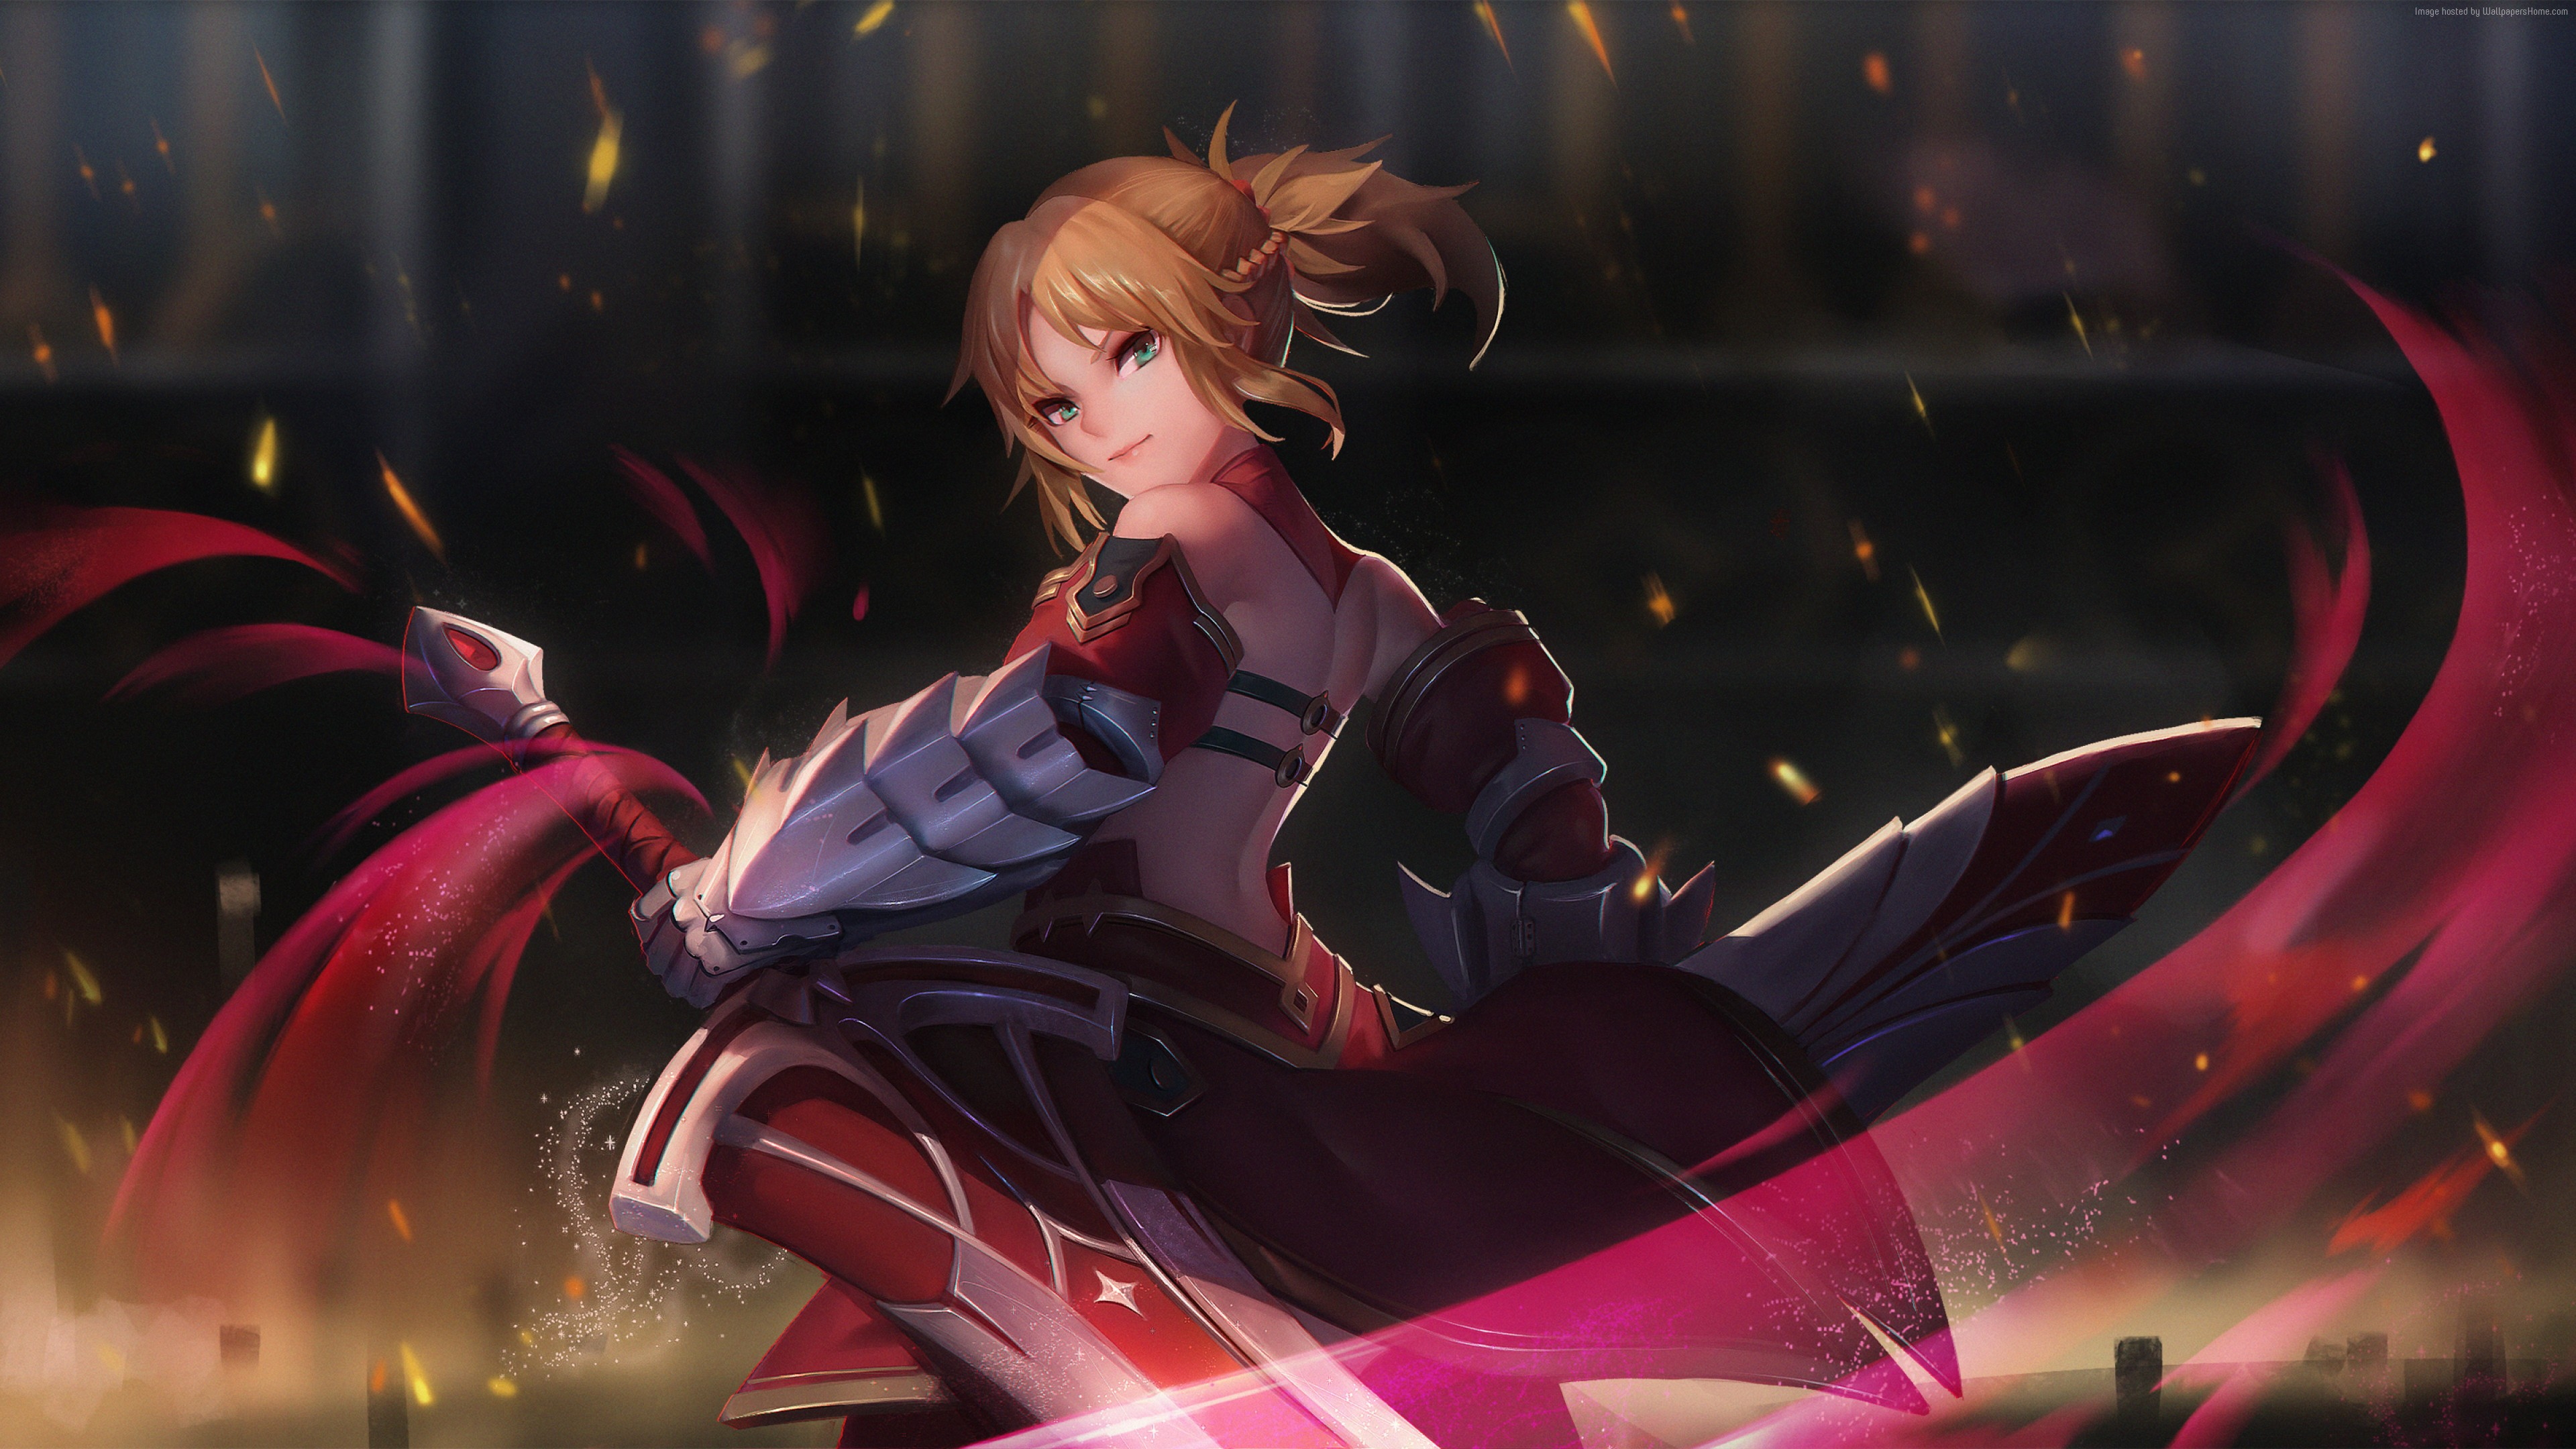 Wallpaper Saber of Red, girl, 4K, Art